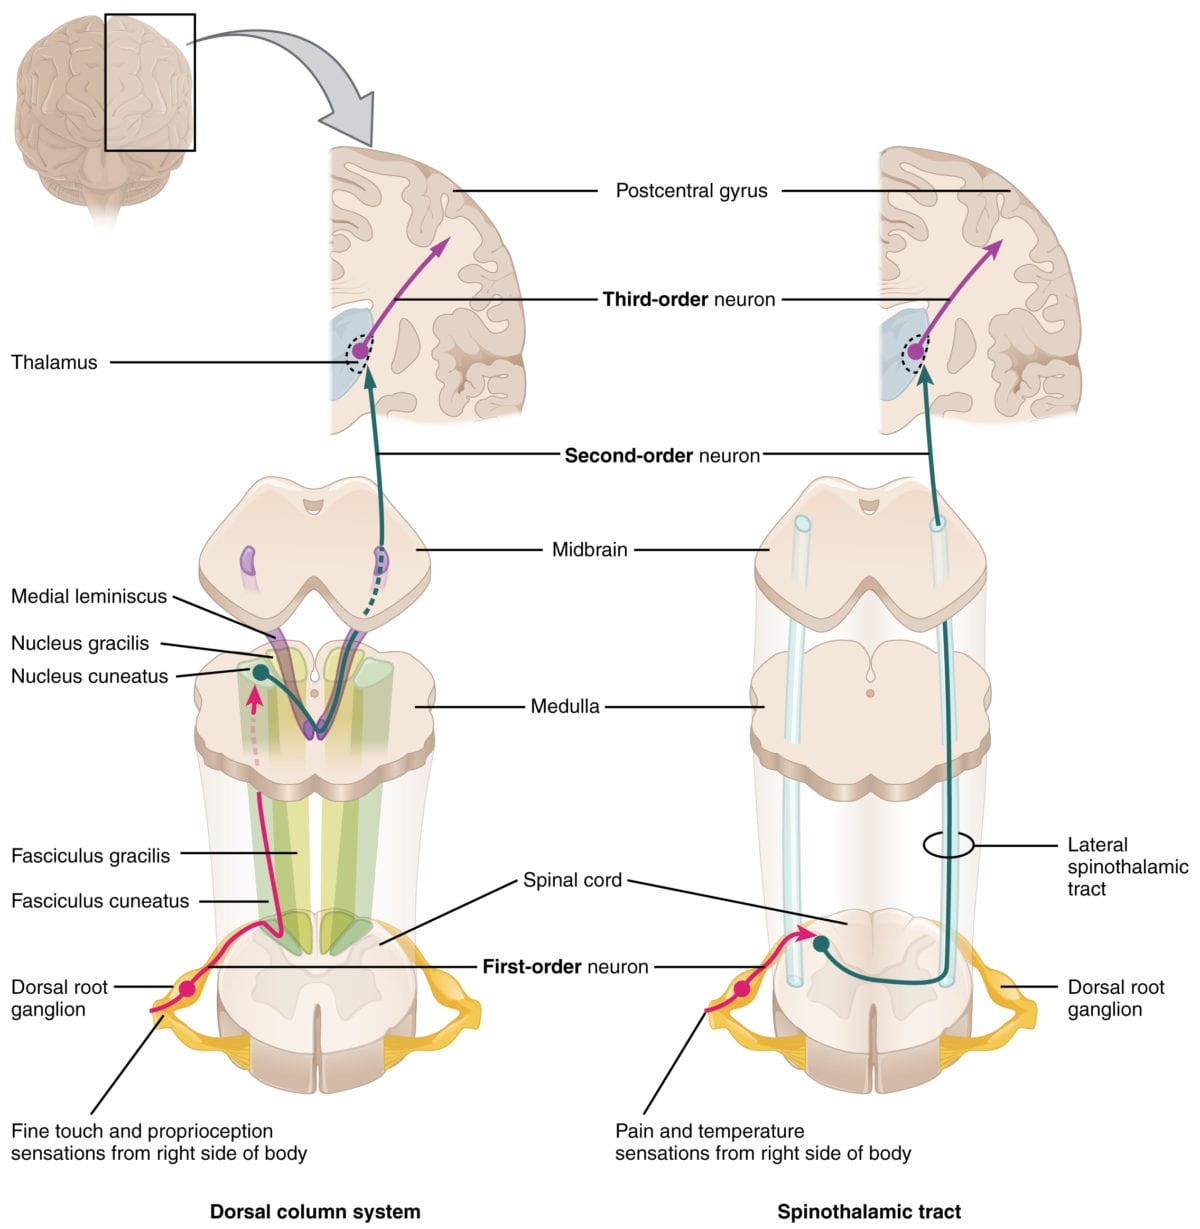 spine anatomy and pathology of disease spinal cord pain and sensory pathway